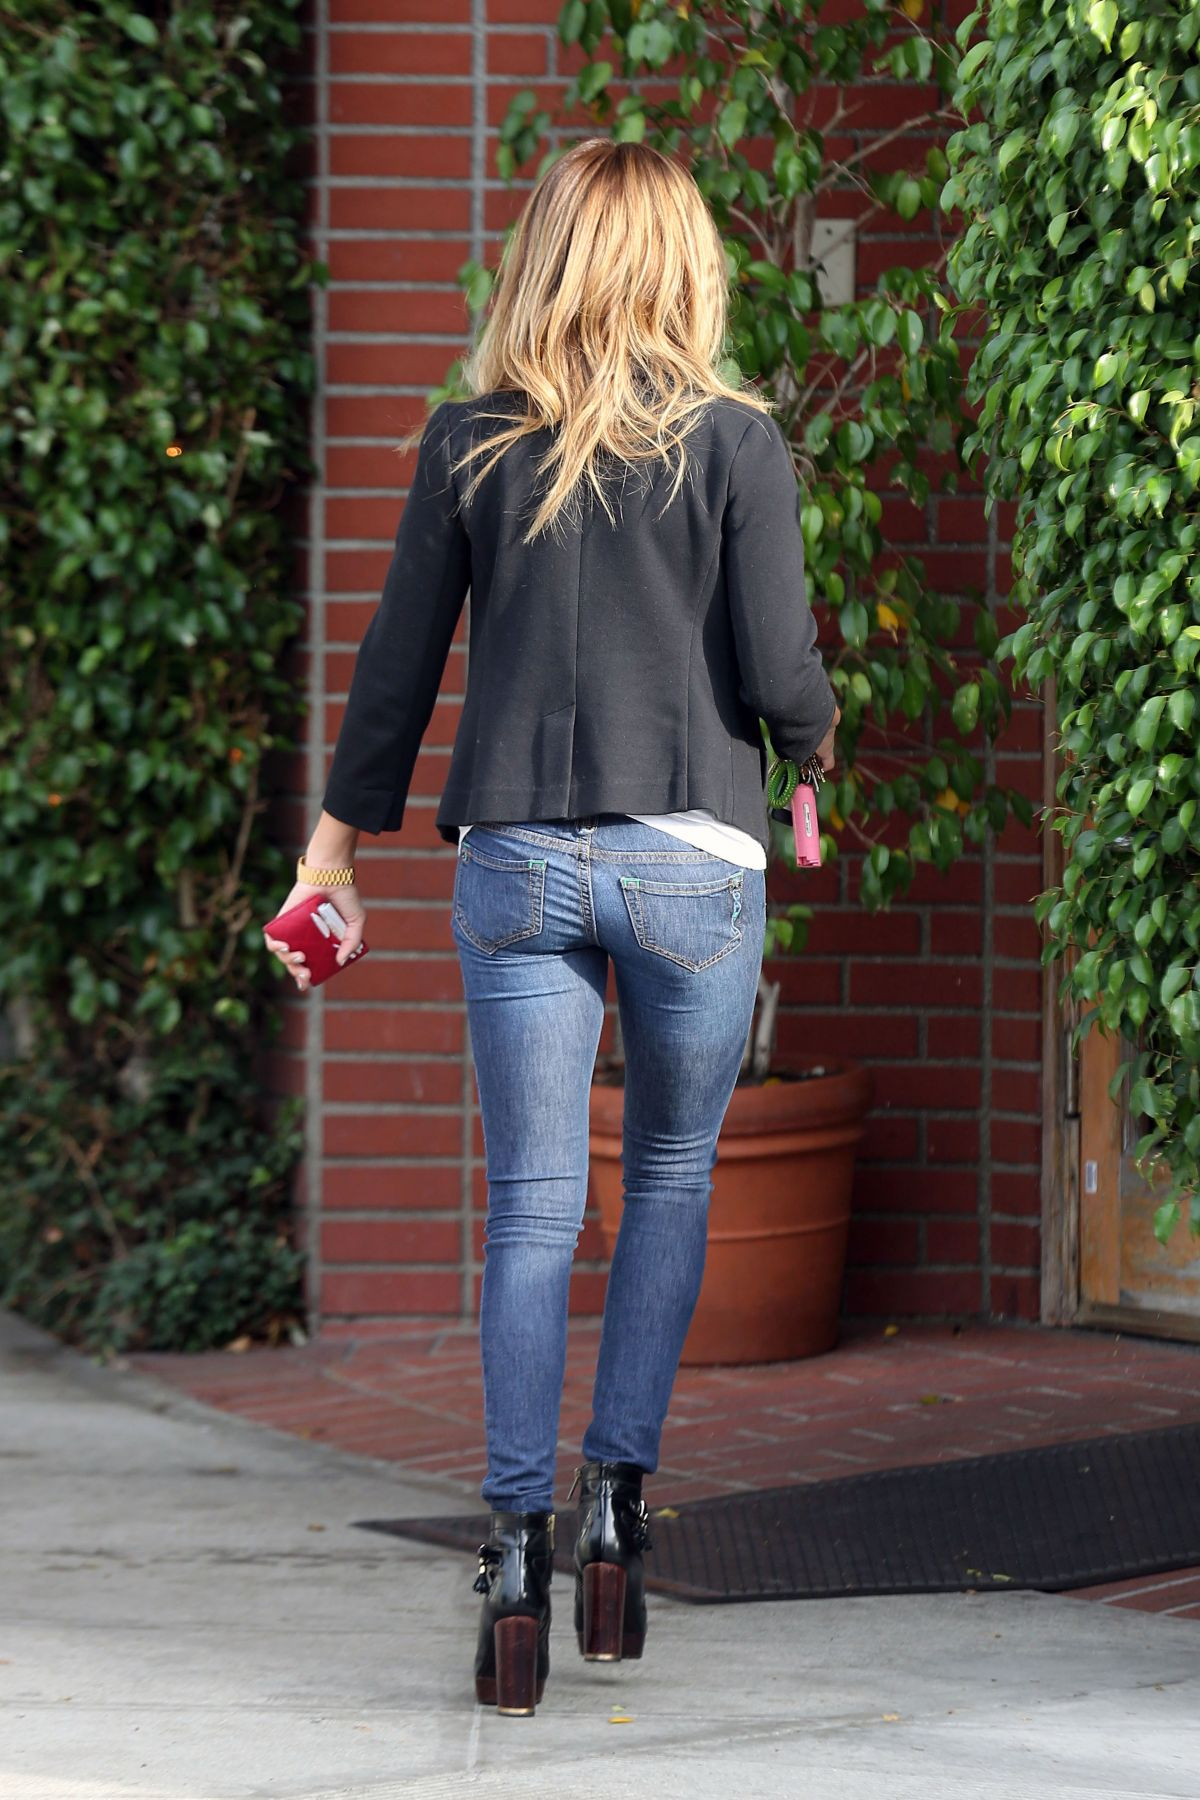 ashley-tisdale-in-tight-pants-free-live